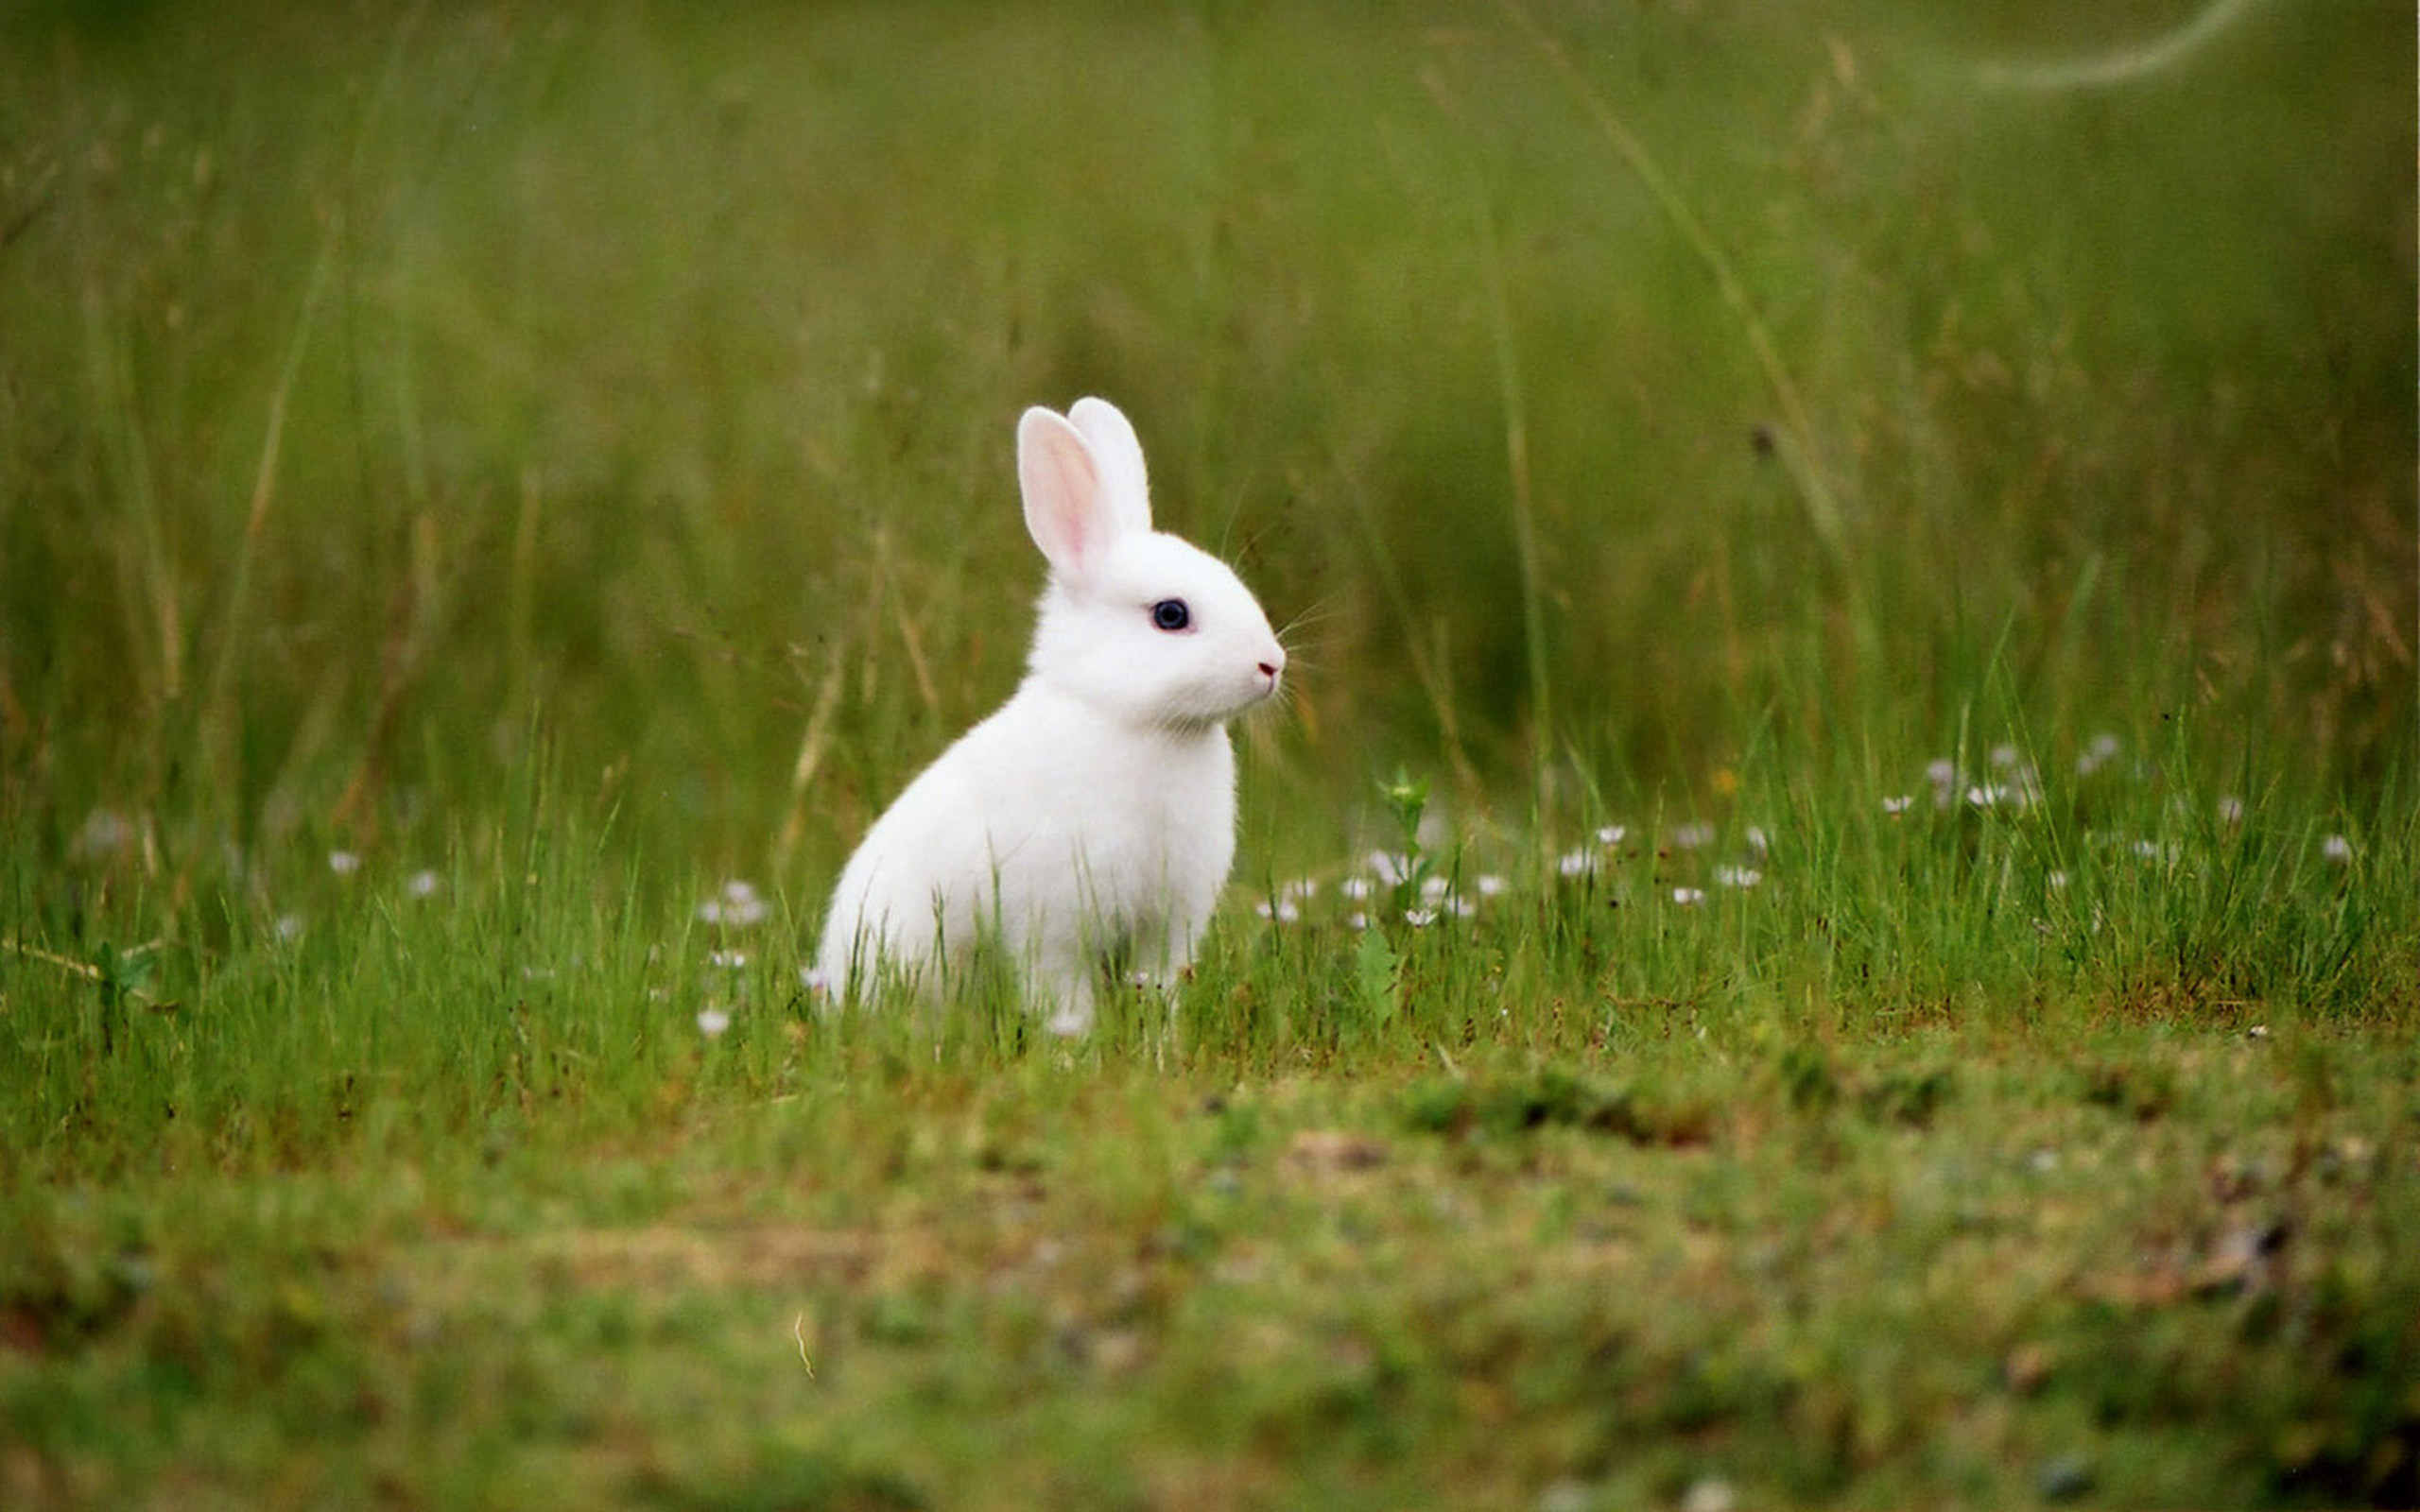 Cute White Rabbit Wallpapers For Desktop Bunny Wallpapers 59 Images